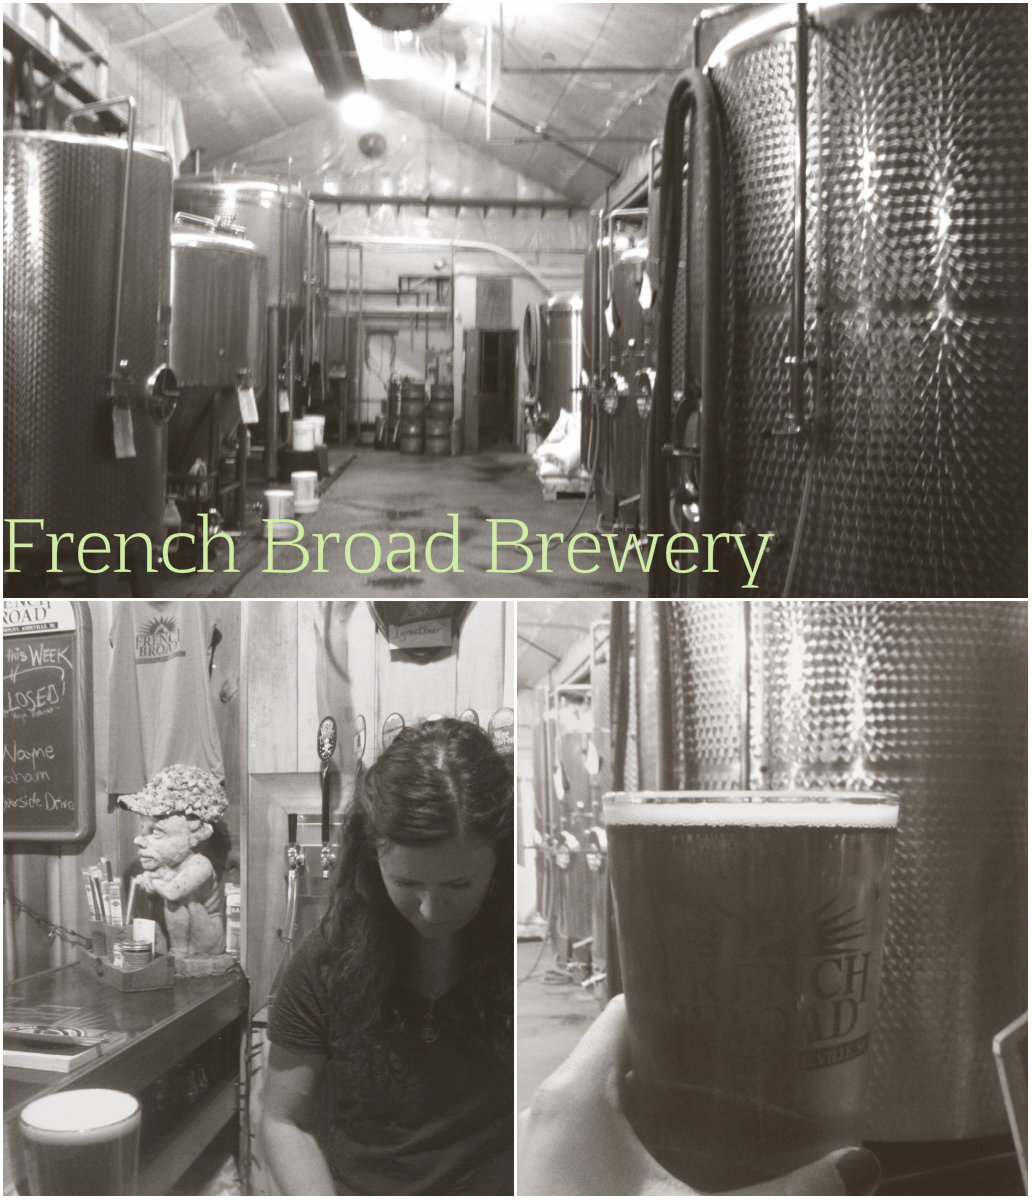 French Broad Brewery